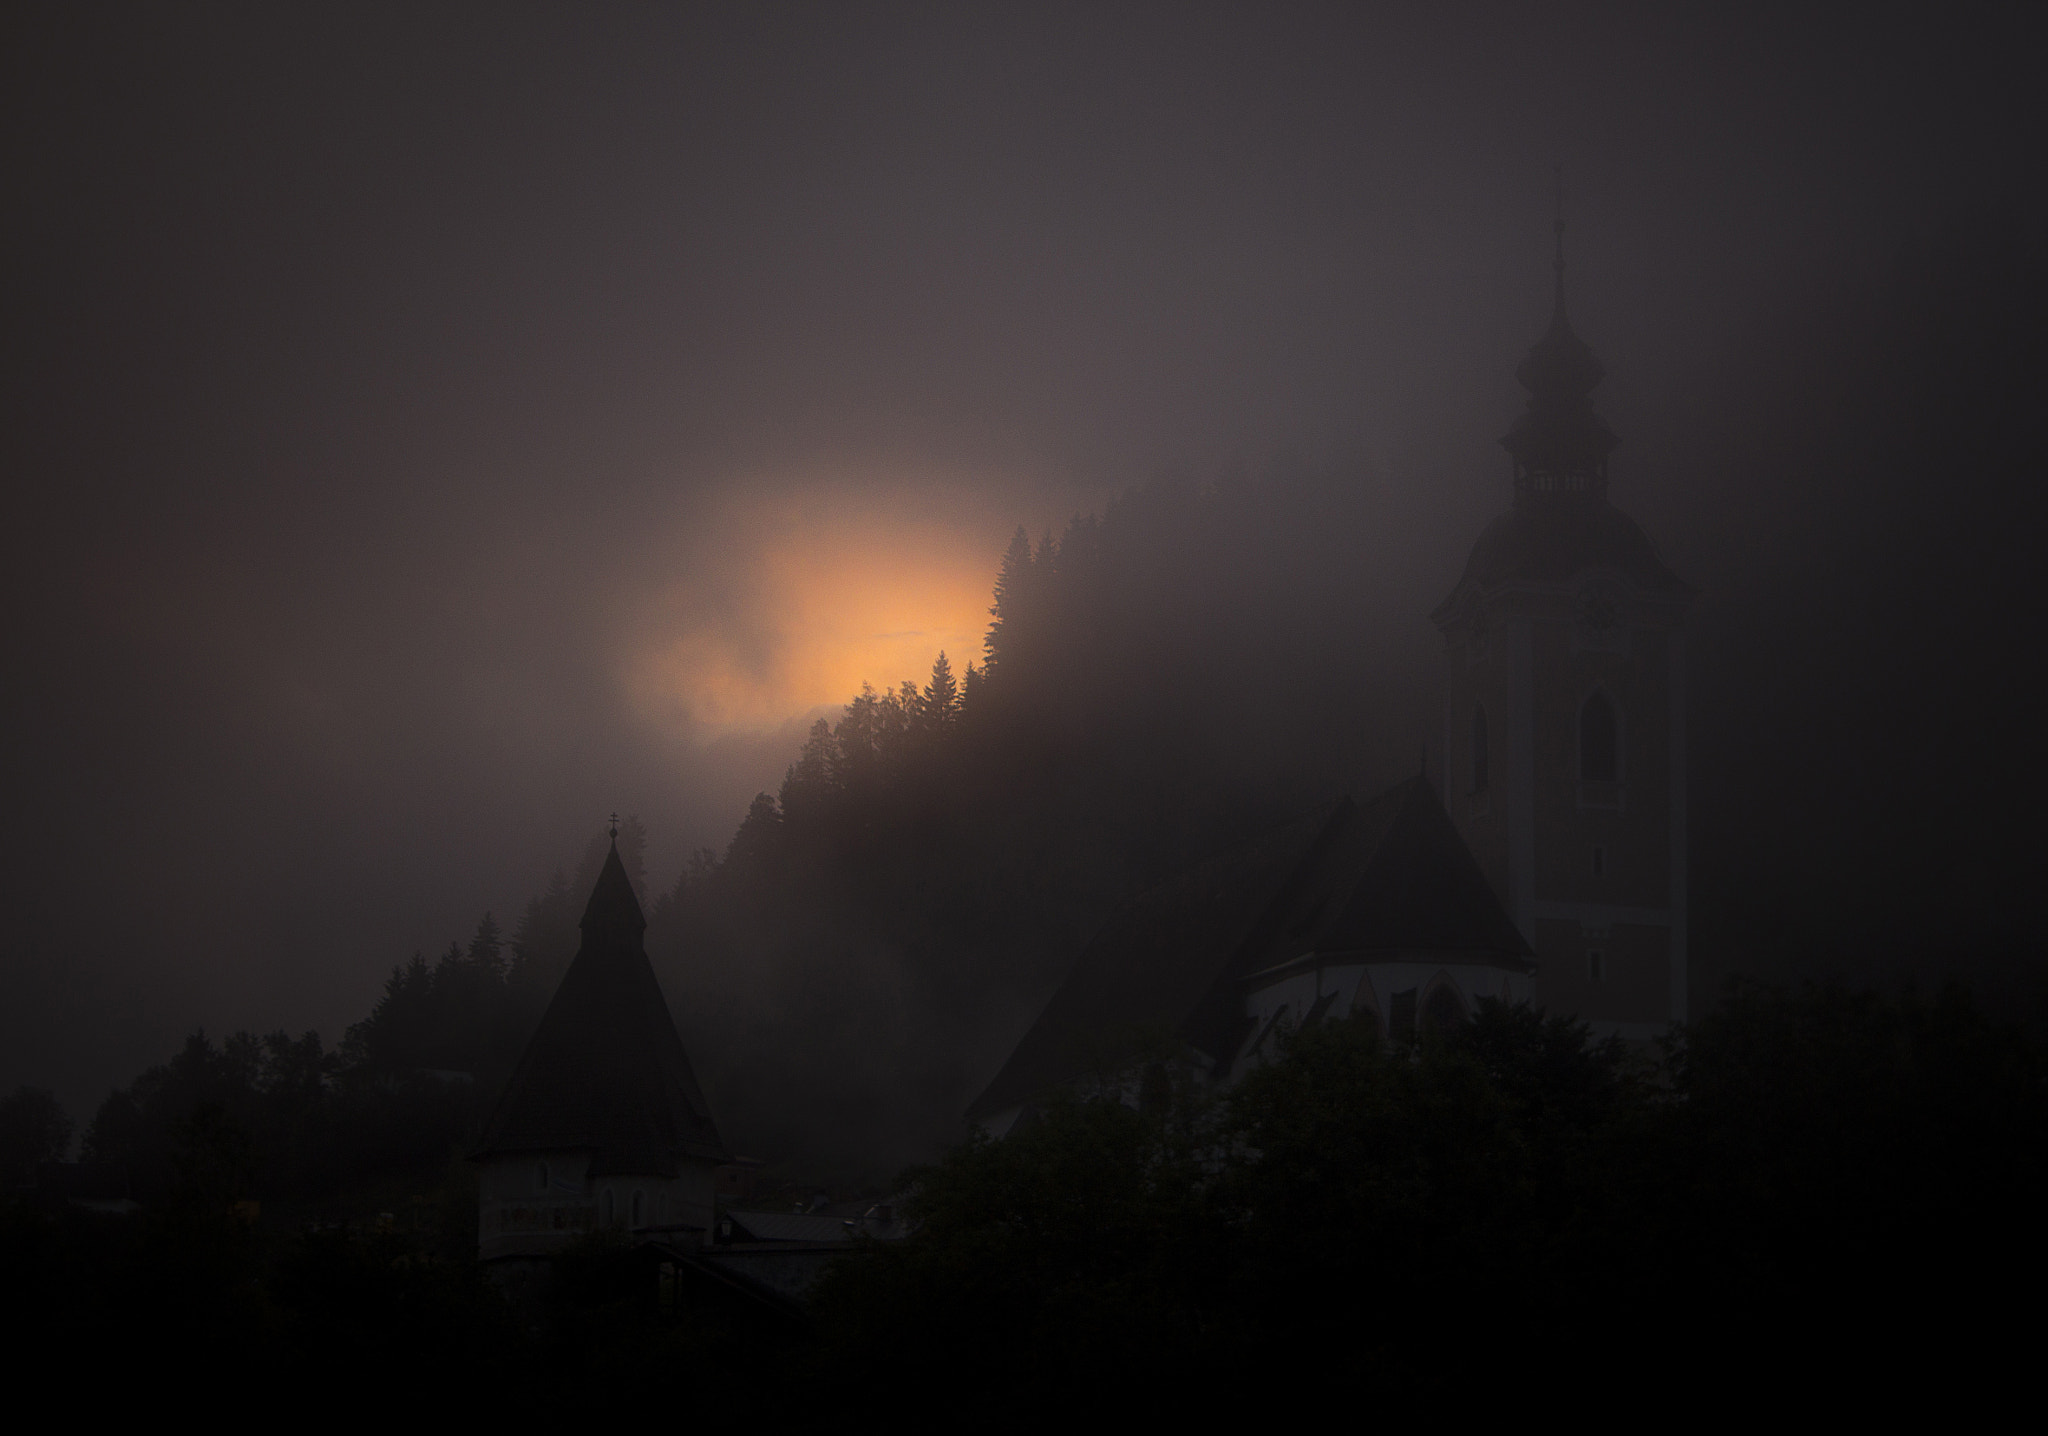 Photograph Mystic Church by Manfred Auer on 500px